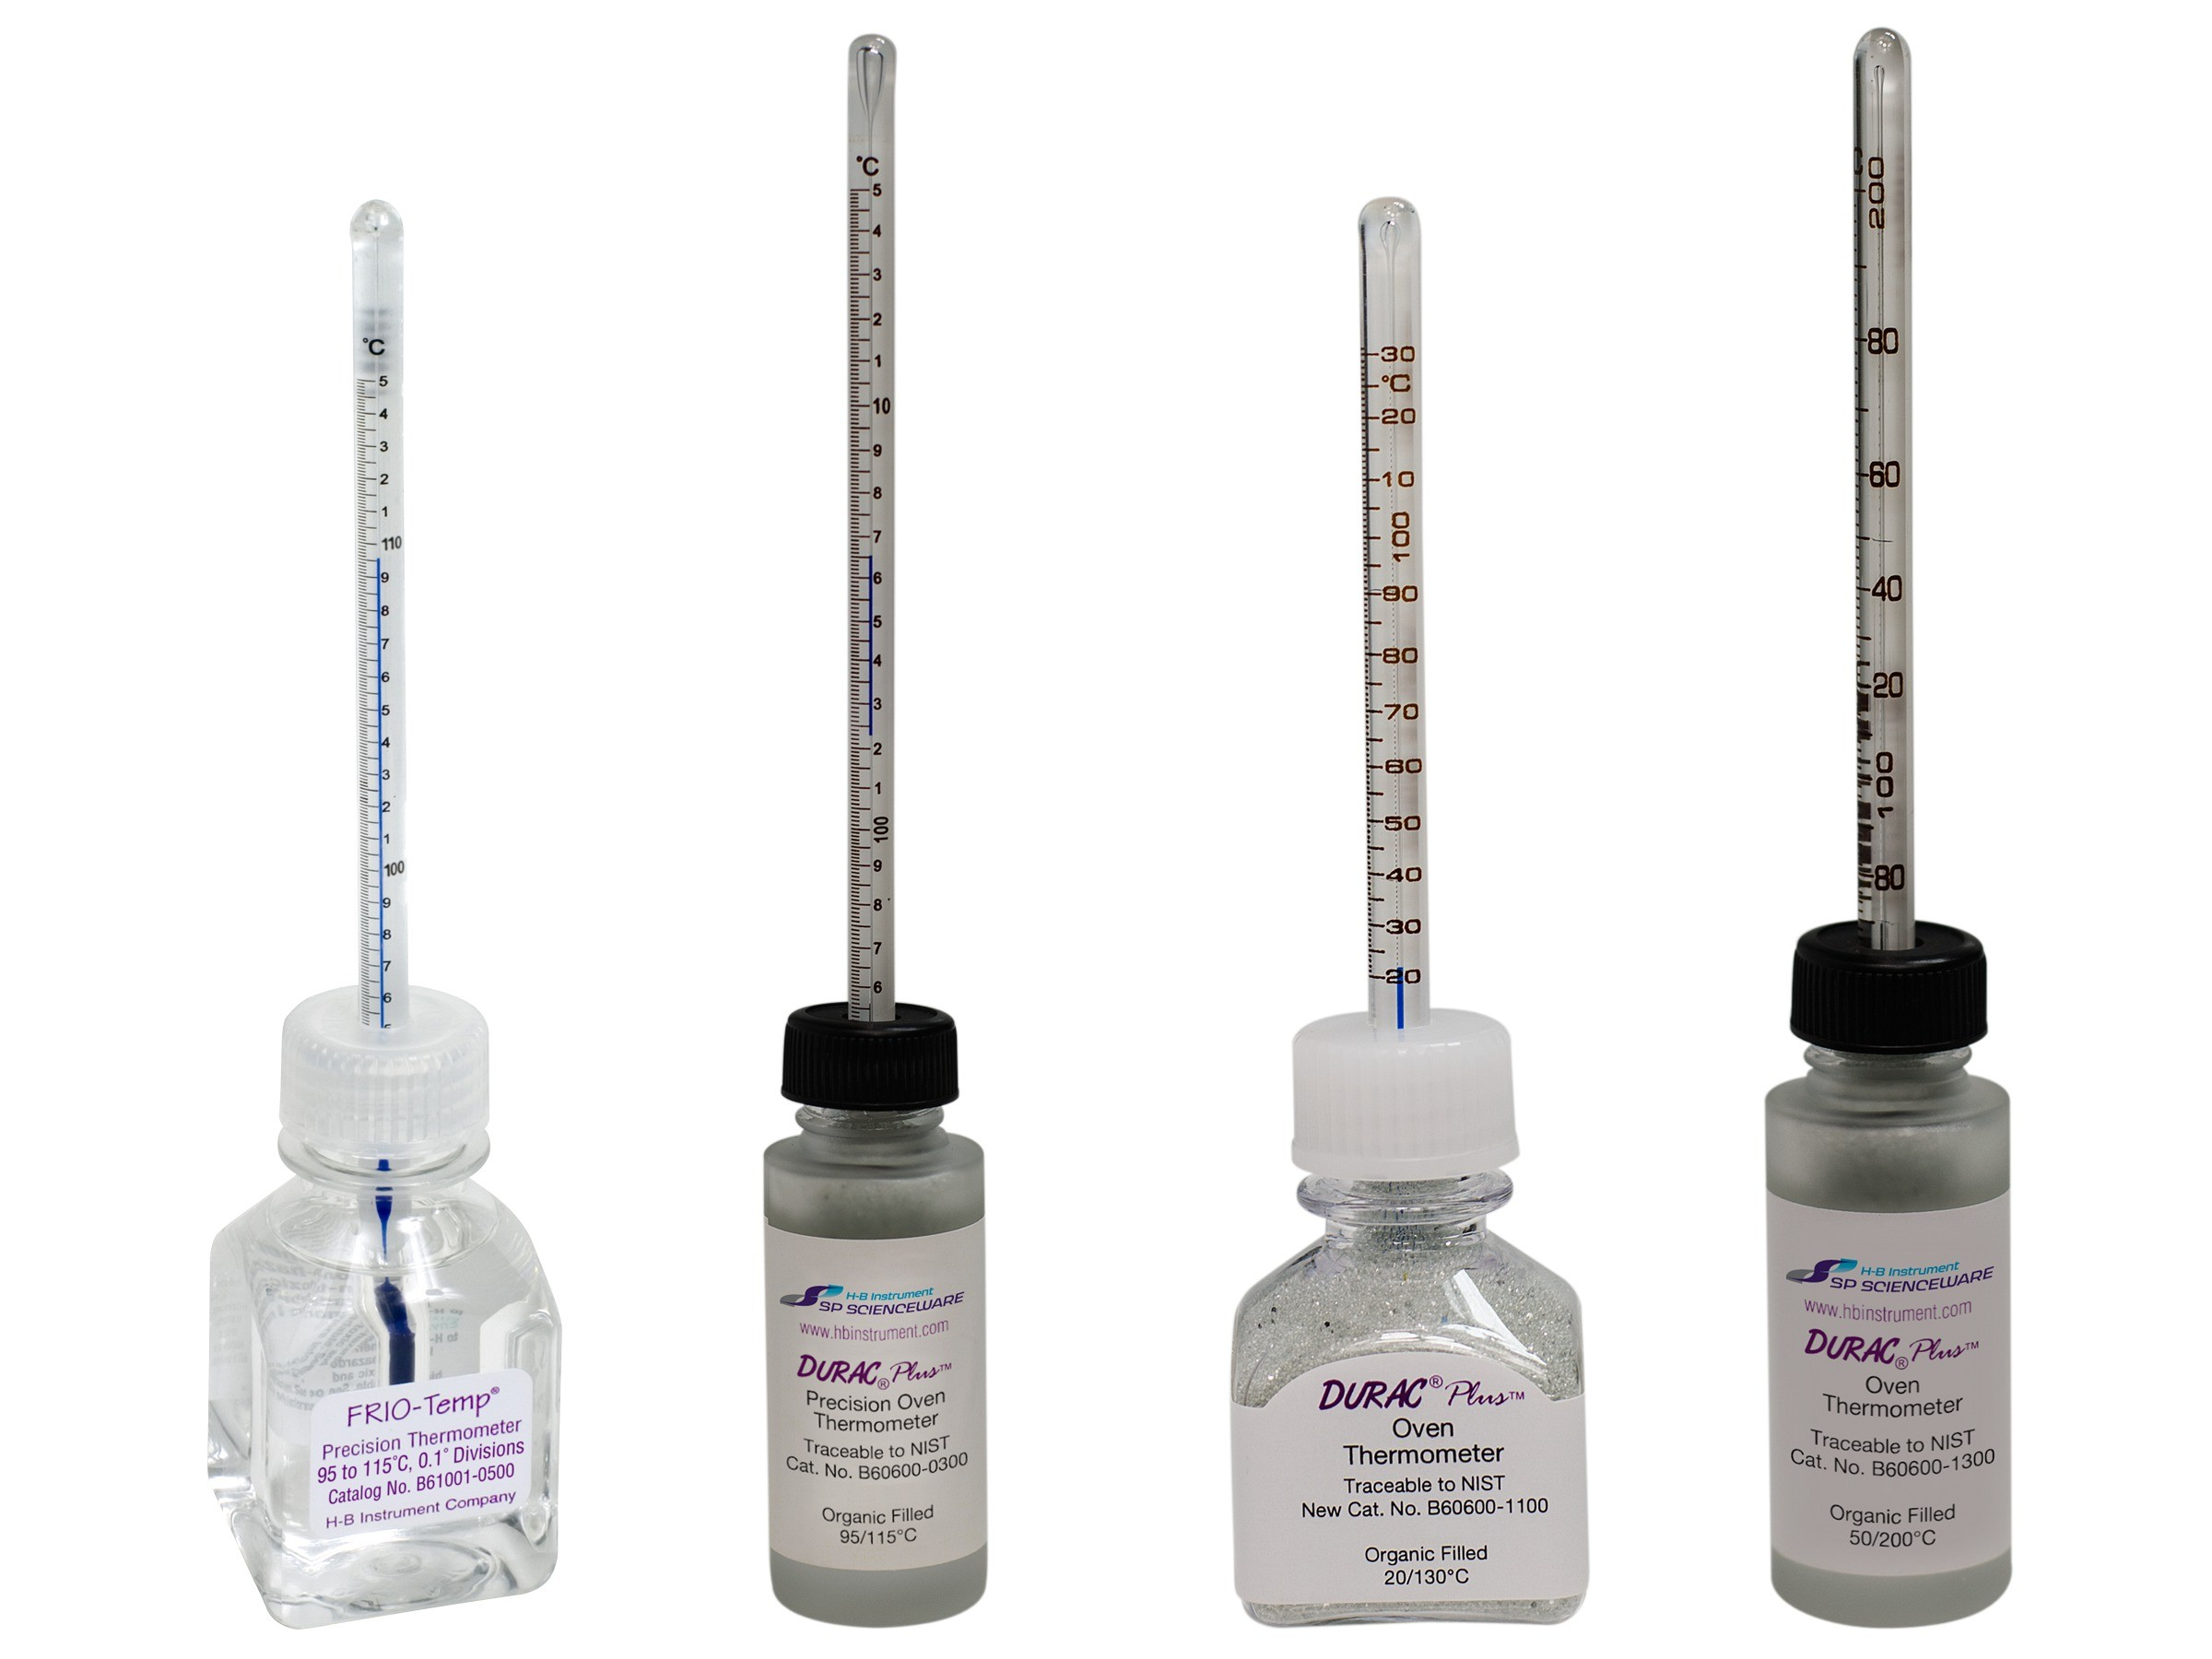 H-B FRIO-Temp and DURAC Plus Oven Verification Thermometers; Traceable to NIST